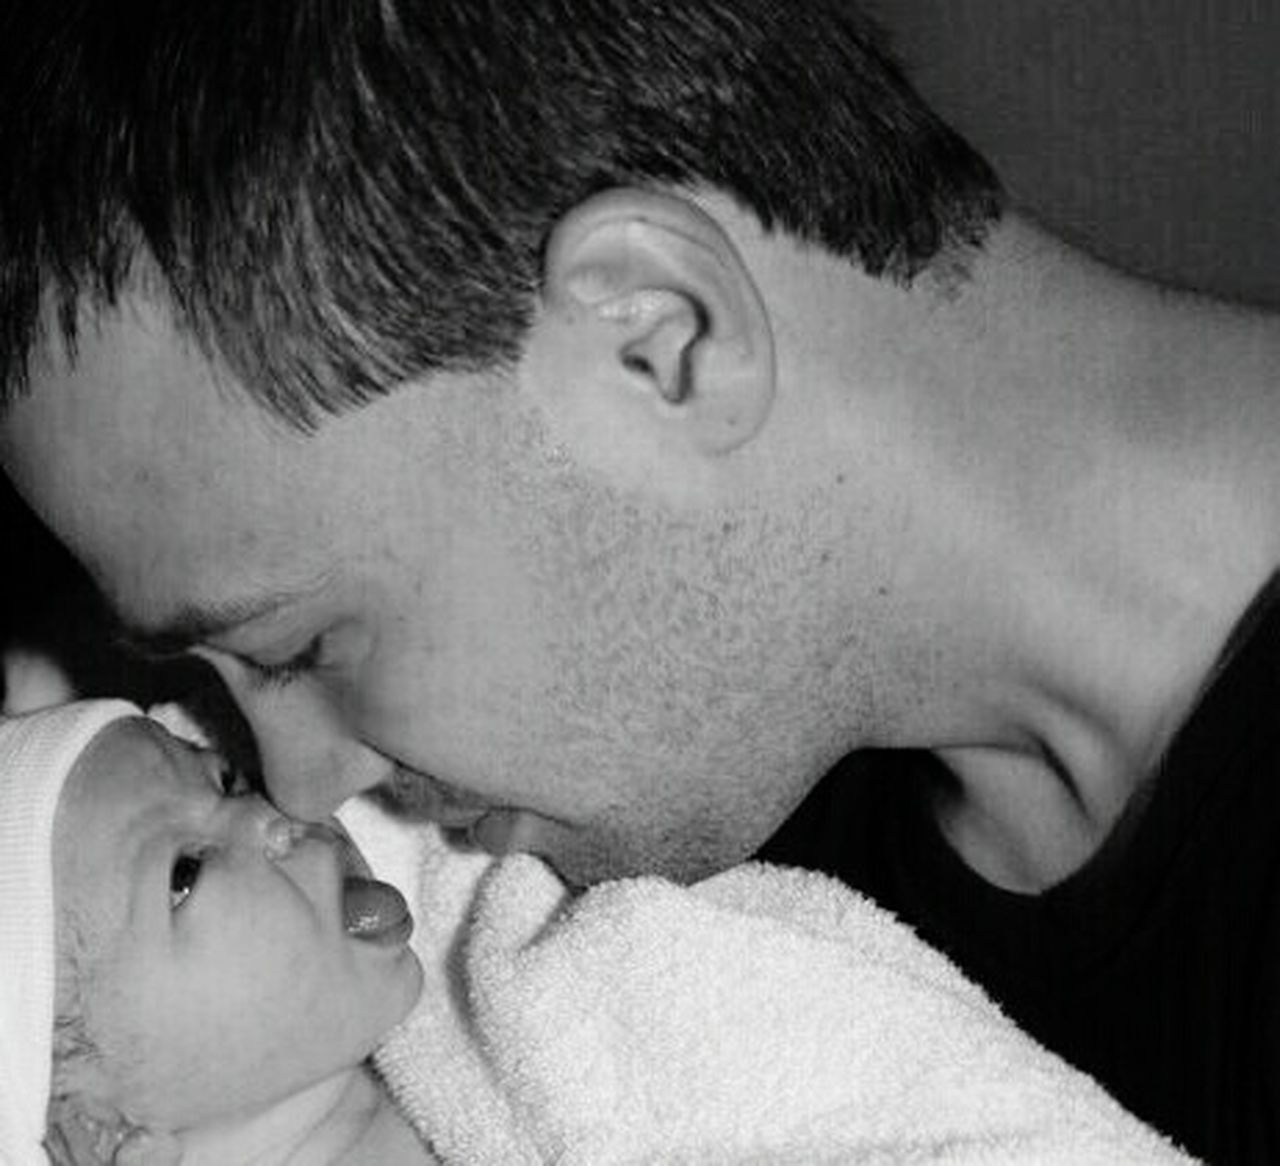 Pure Love Eternal Love Miracle Of Life Newborn Father And Daughter. Birth Daddy's Girl Lovelovelove Natural Love Breathtaking First Thing I See First Love Affection Baby Photography Baby ❤ Simply Beautiful! Dream Comes True! Love Of A Lifetime Precious Moments Of Life Sweet Baby ❤ Love Runs Deep From The First Moment We Met Purest Form Of Love